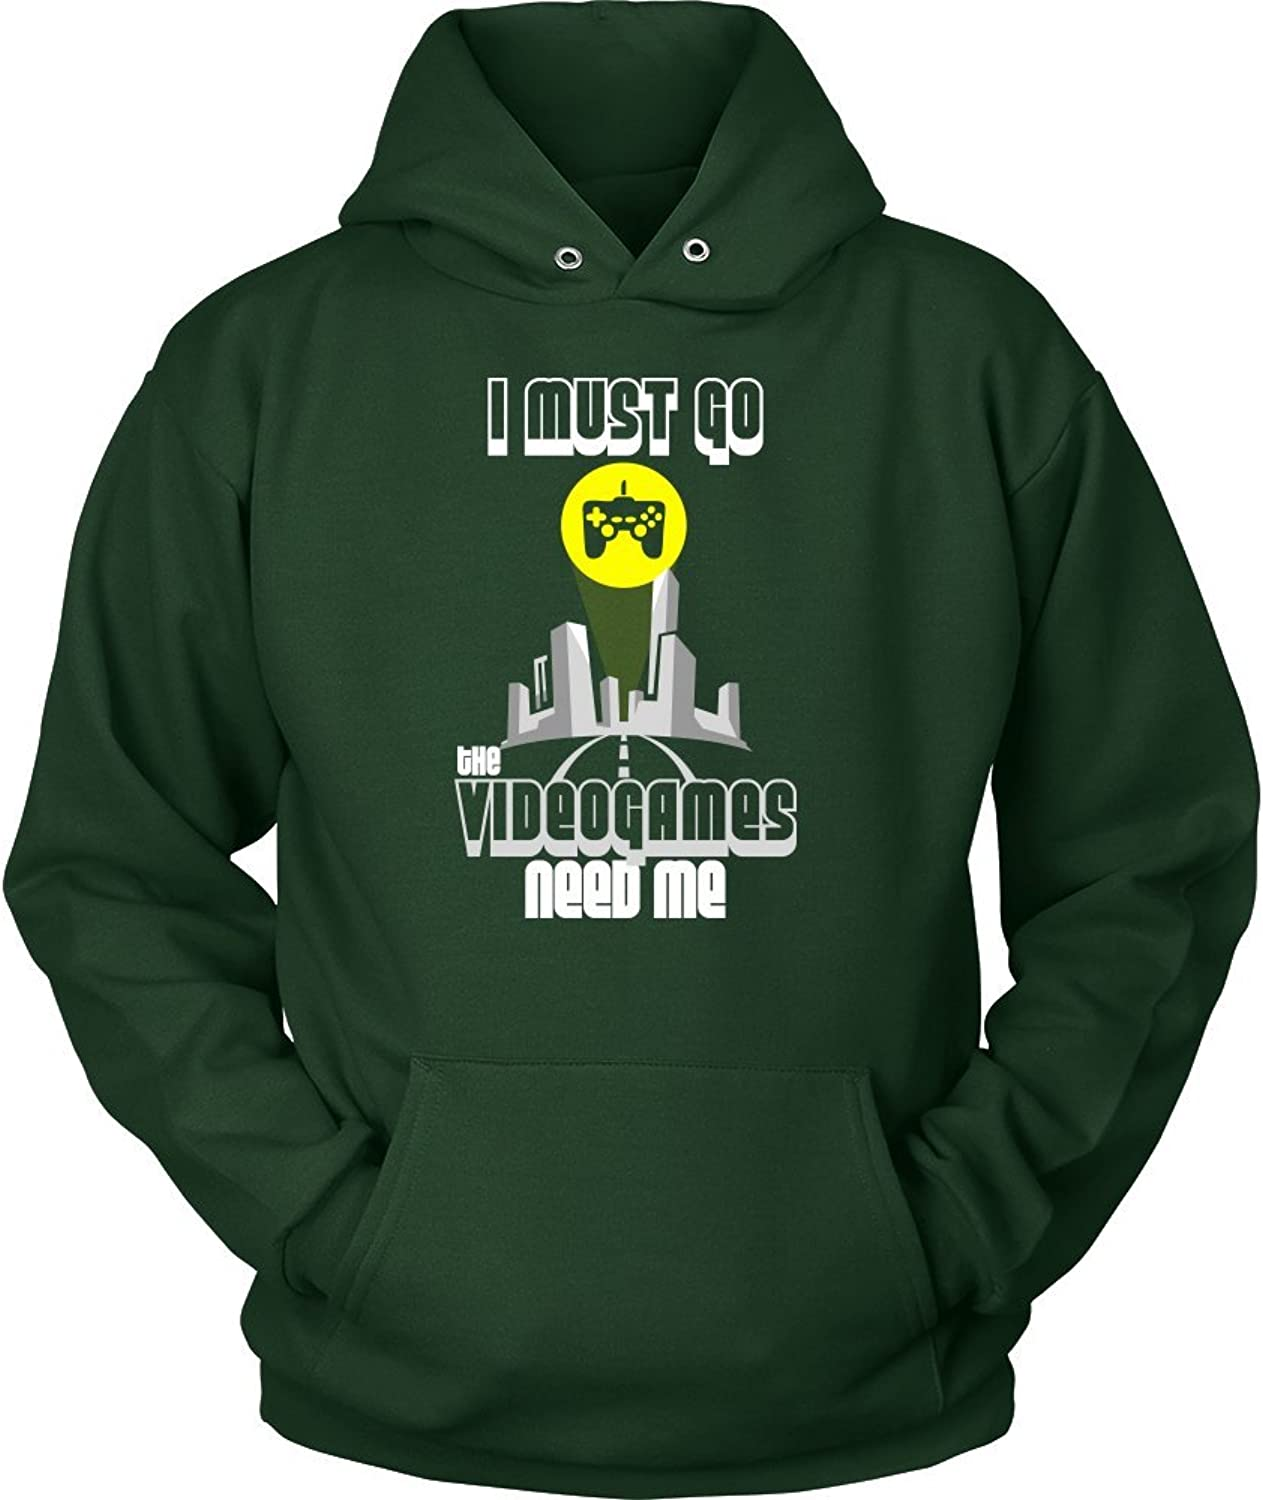 Funny video game Hoodie I Must Go, Videogames Need